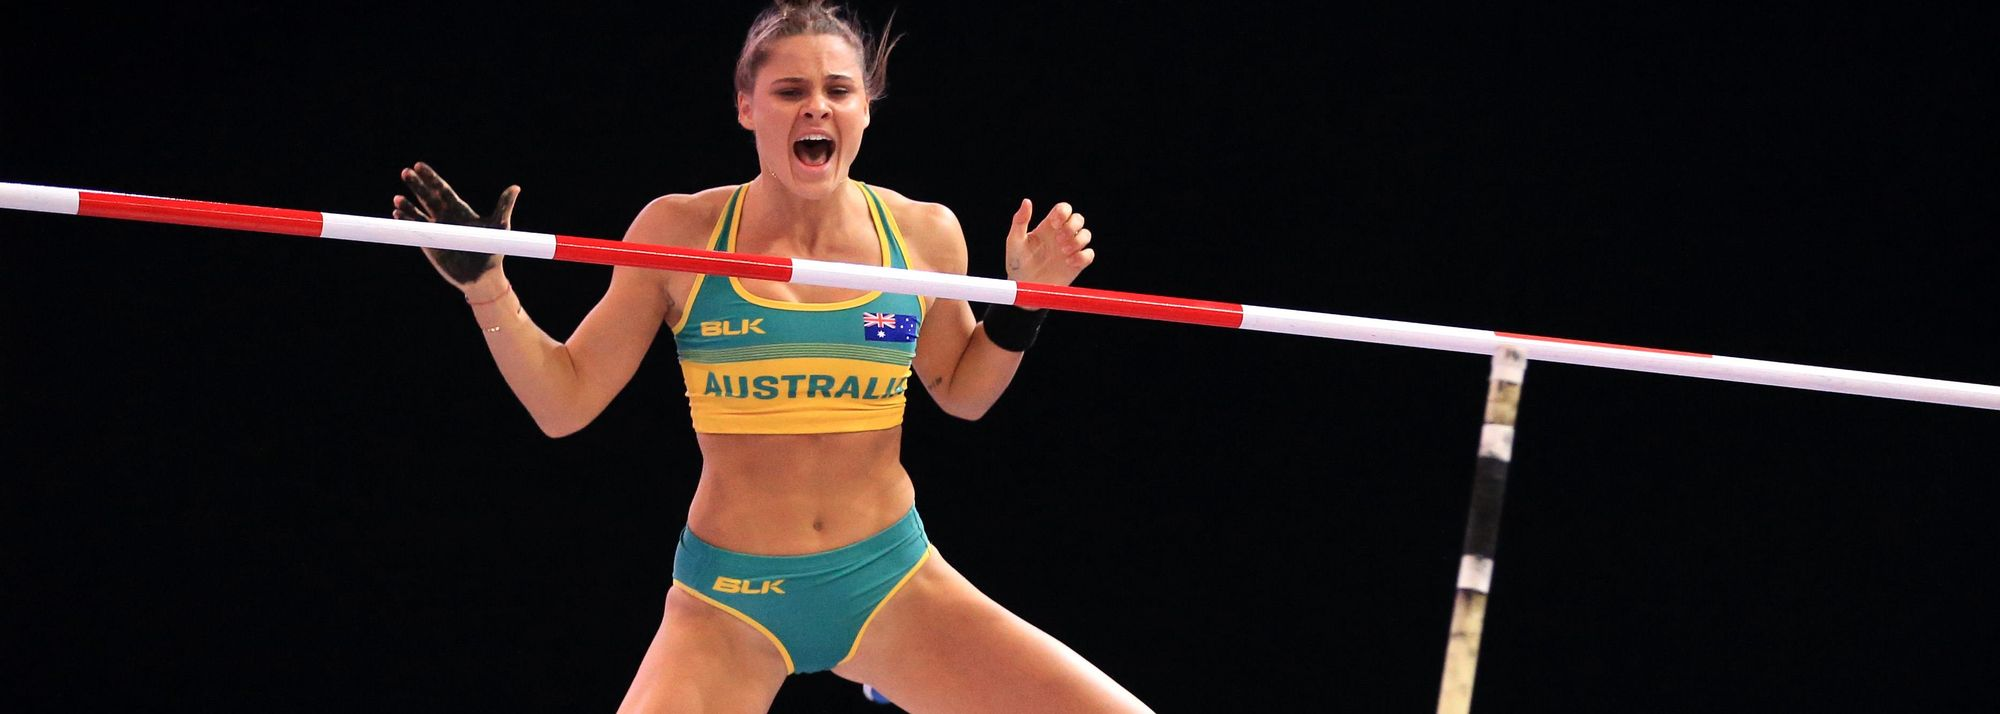 How a year of lockdown transformed the Australian vaulter's career